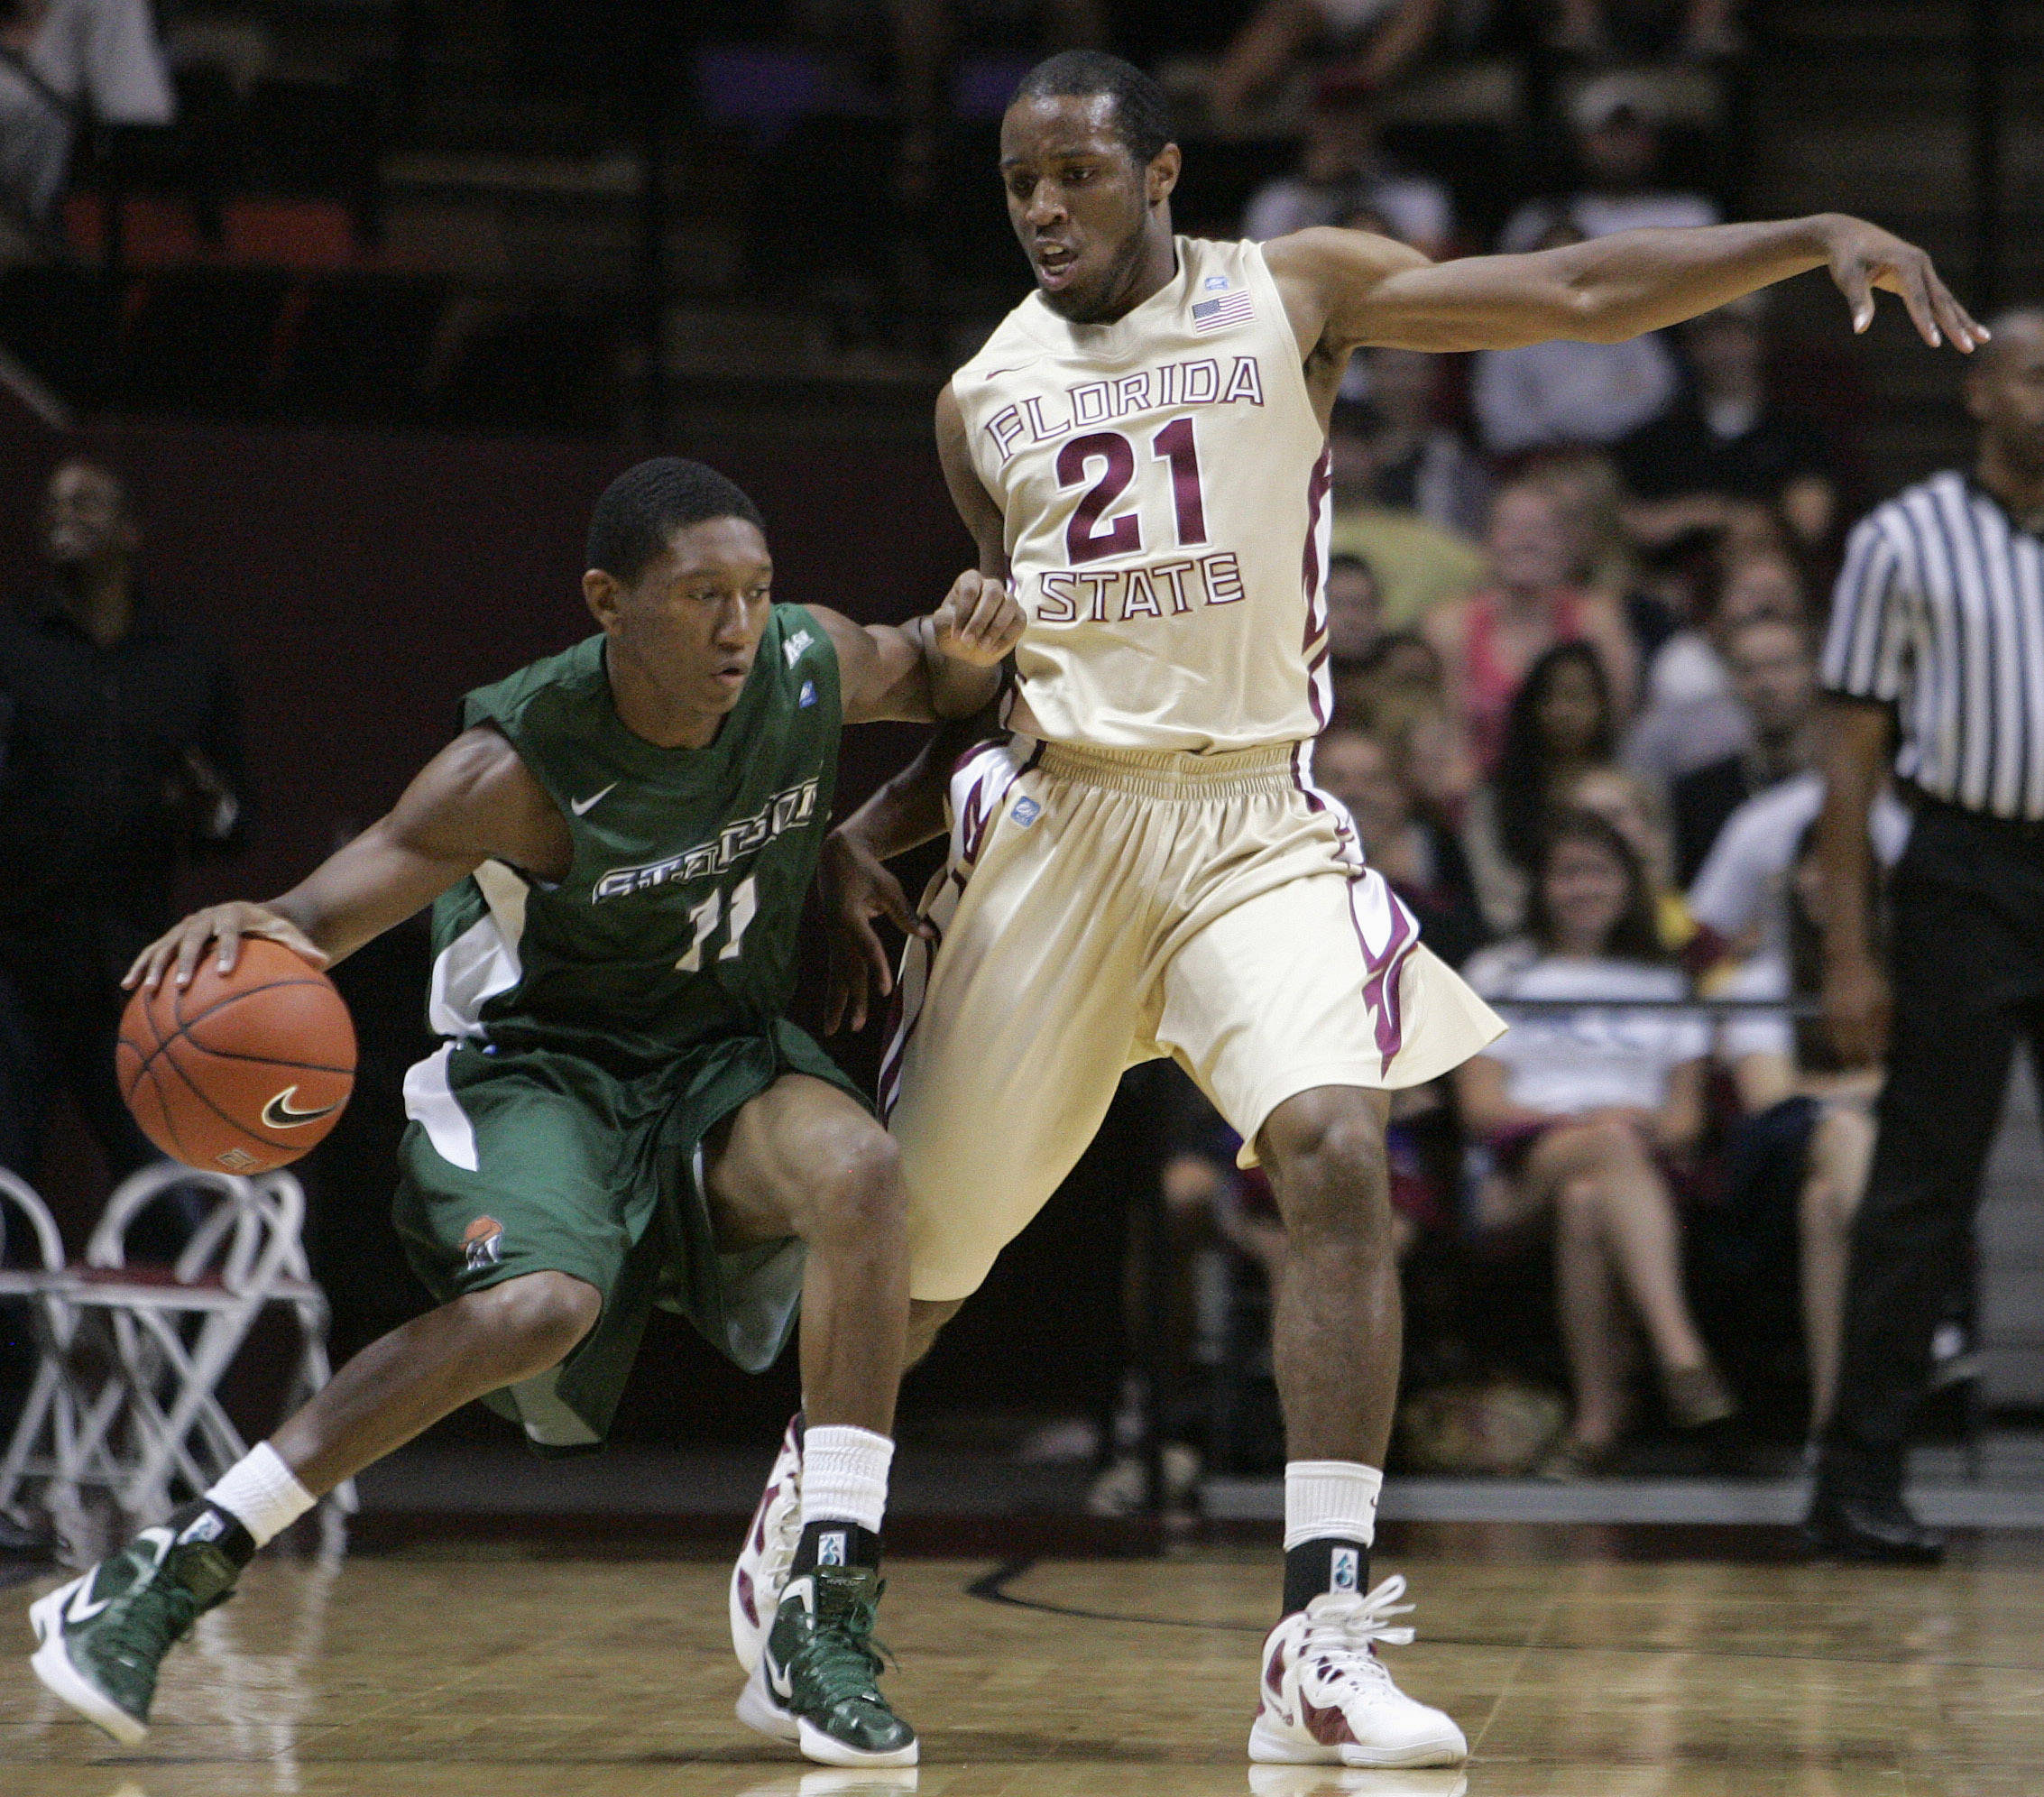 Florida State's Michael Snaer defends Stetson's Aaron Graham. (AP Photo/Steve Cannon)